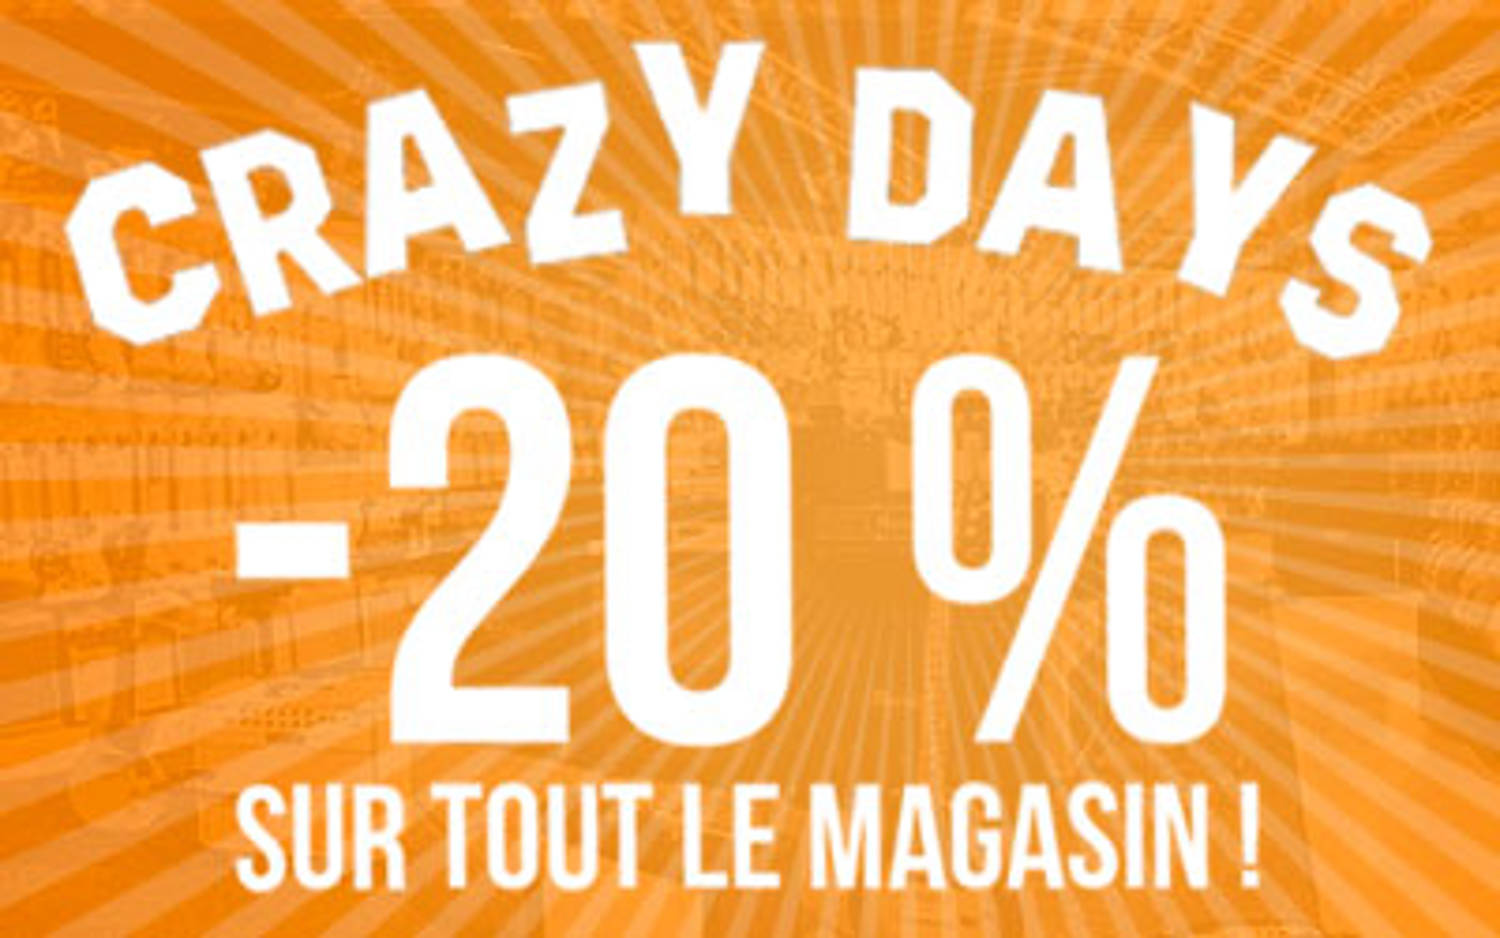 CRAZY DAYS ! -20% sur tout le magasin